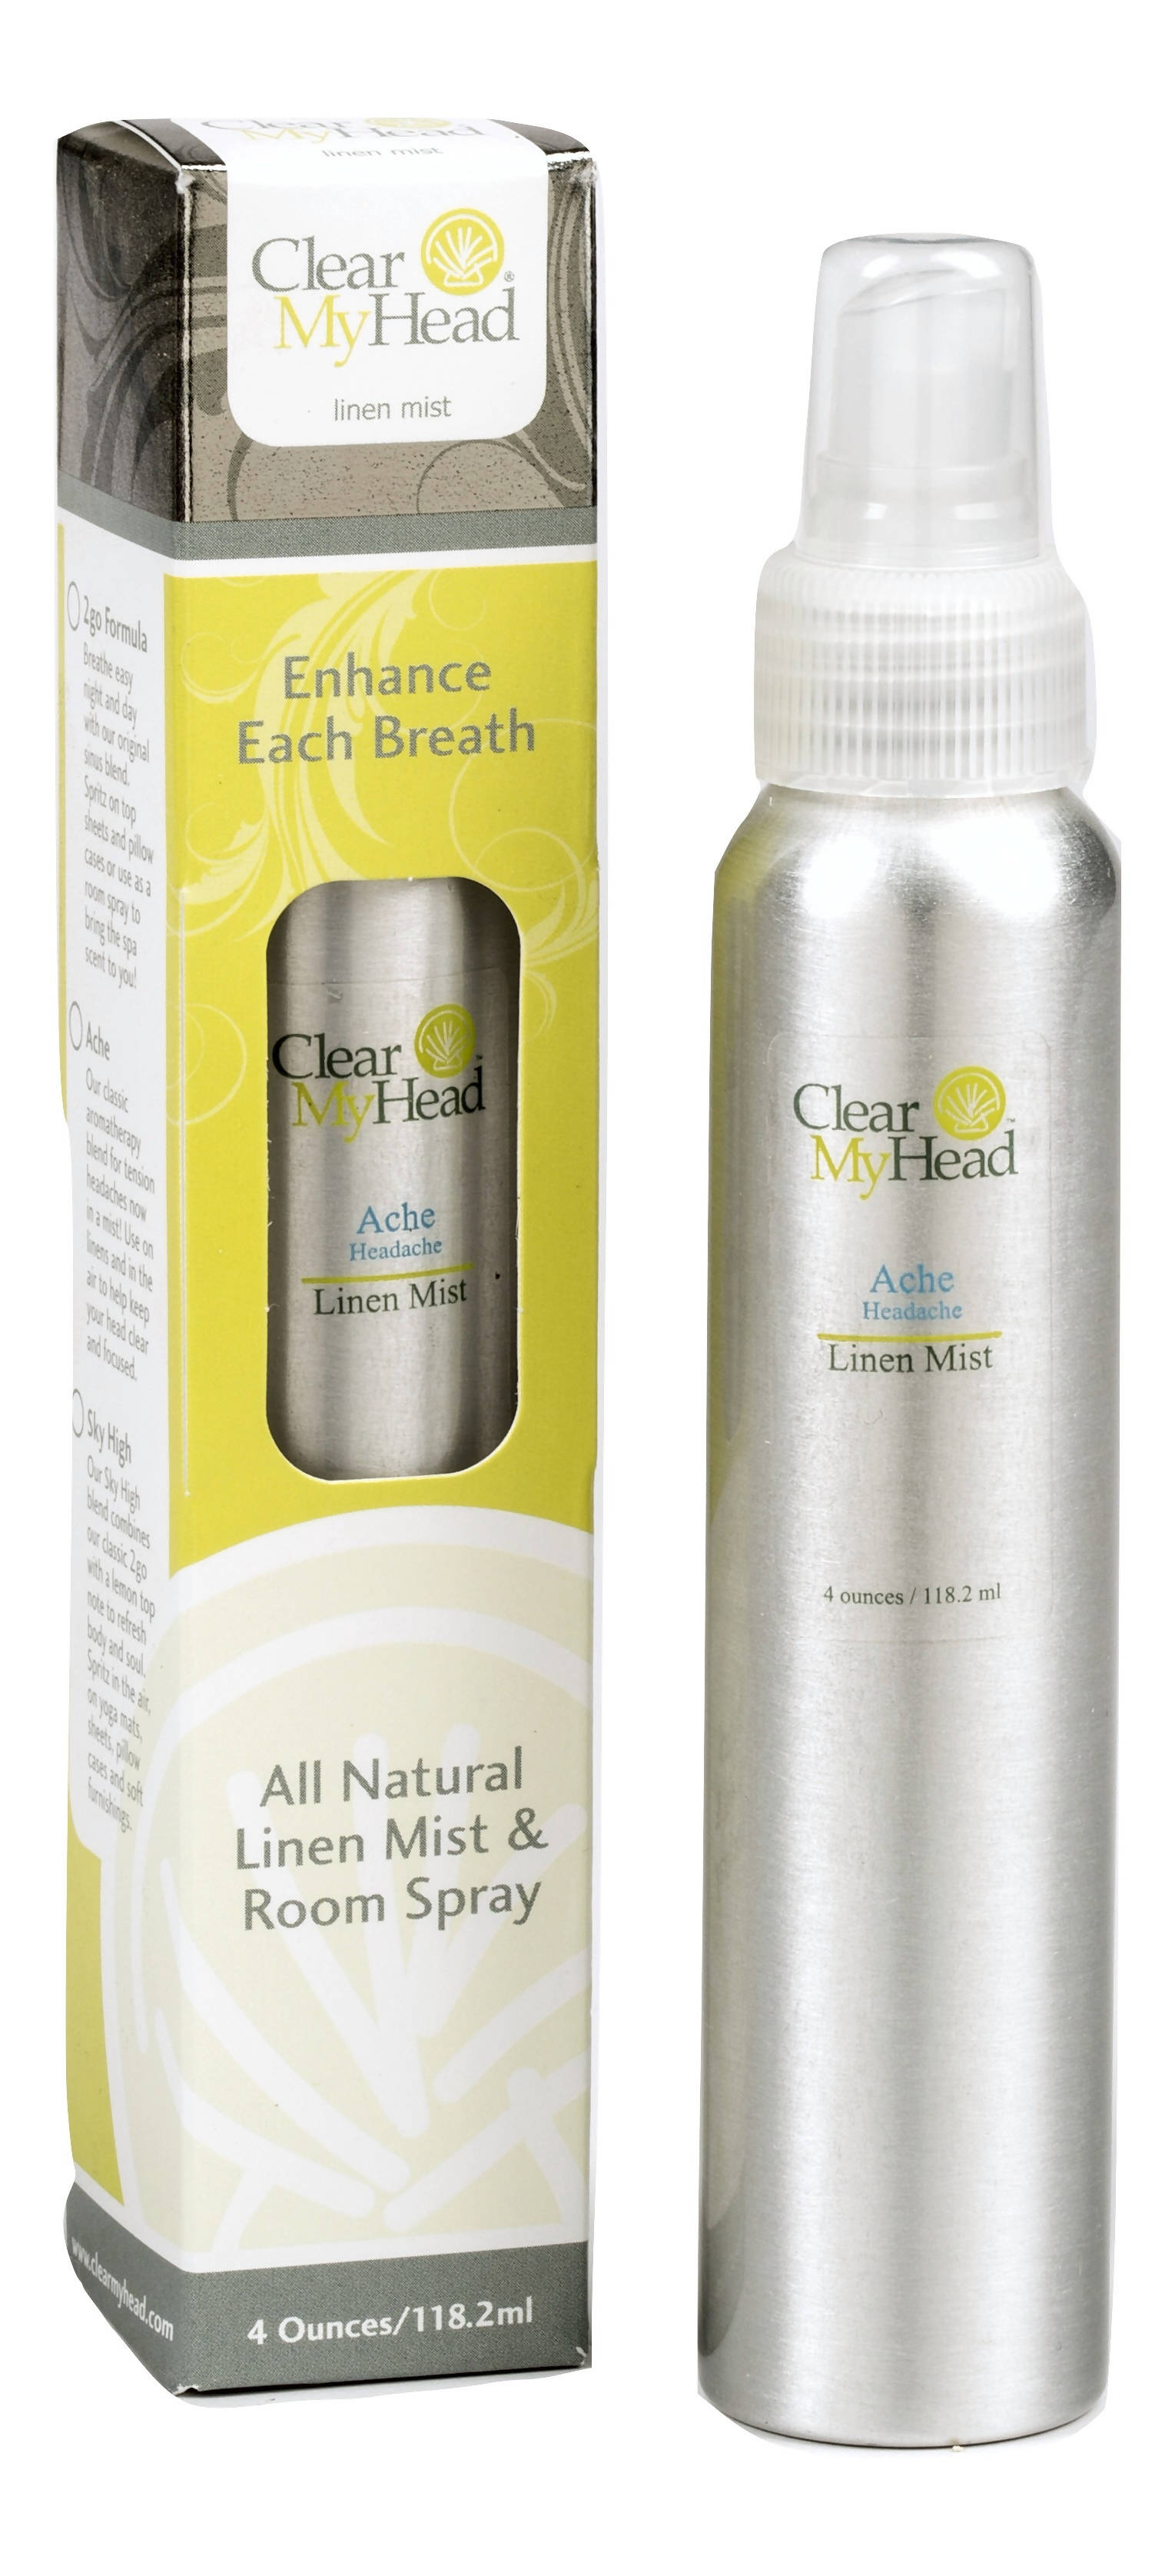 4 oz. Pump, Clear My Head Ache Linen Mist